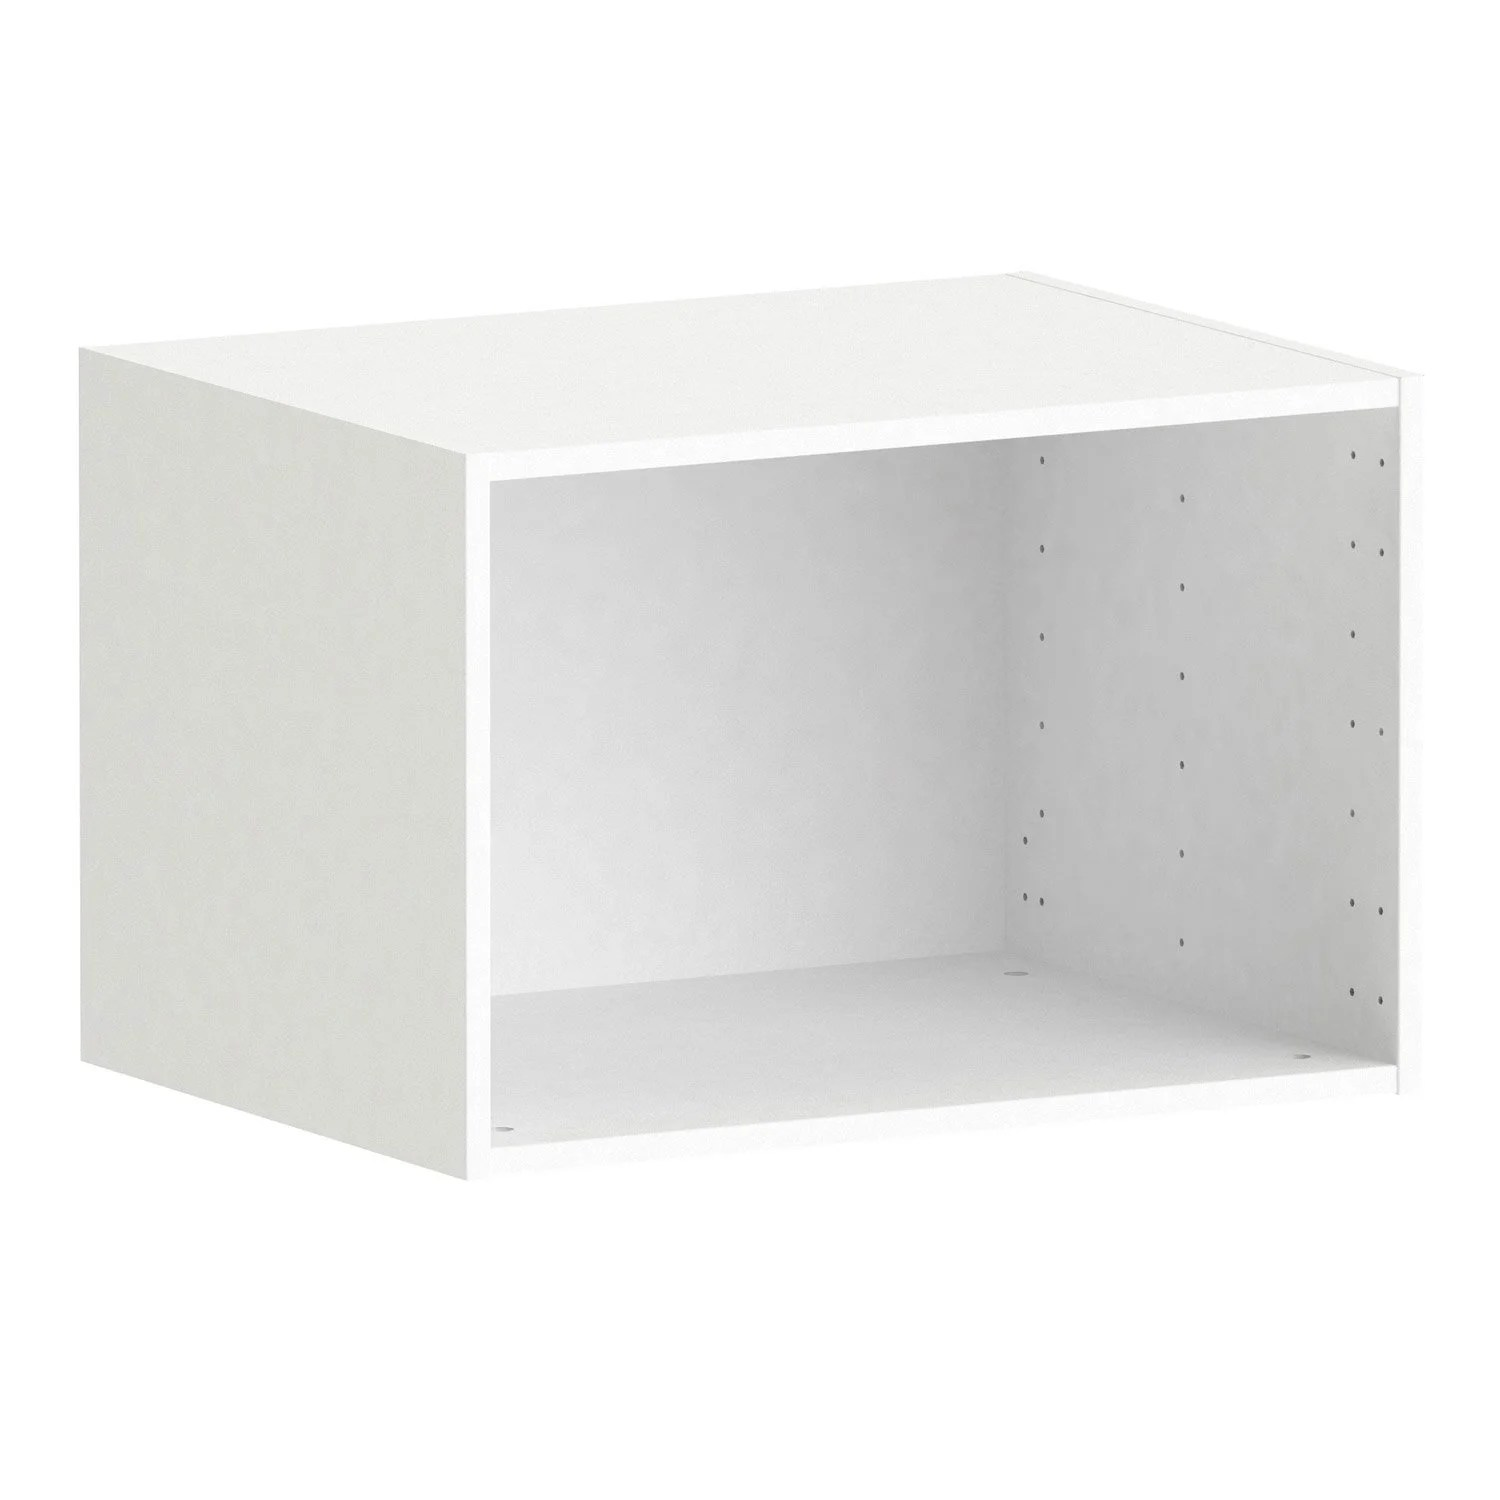 Meuble 50x50 Caisson Spaceo Home 40 X 60 X 45 Cm Blanc Leroy Merlin